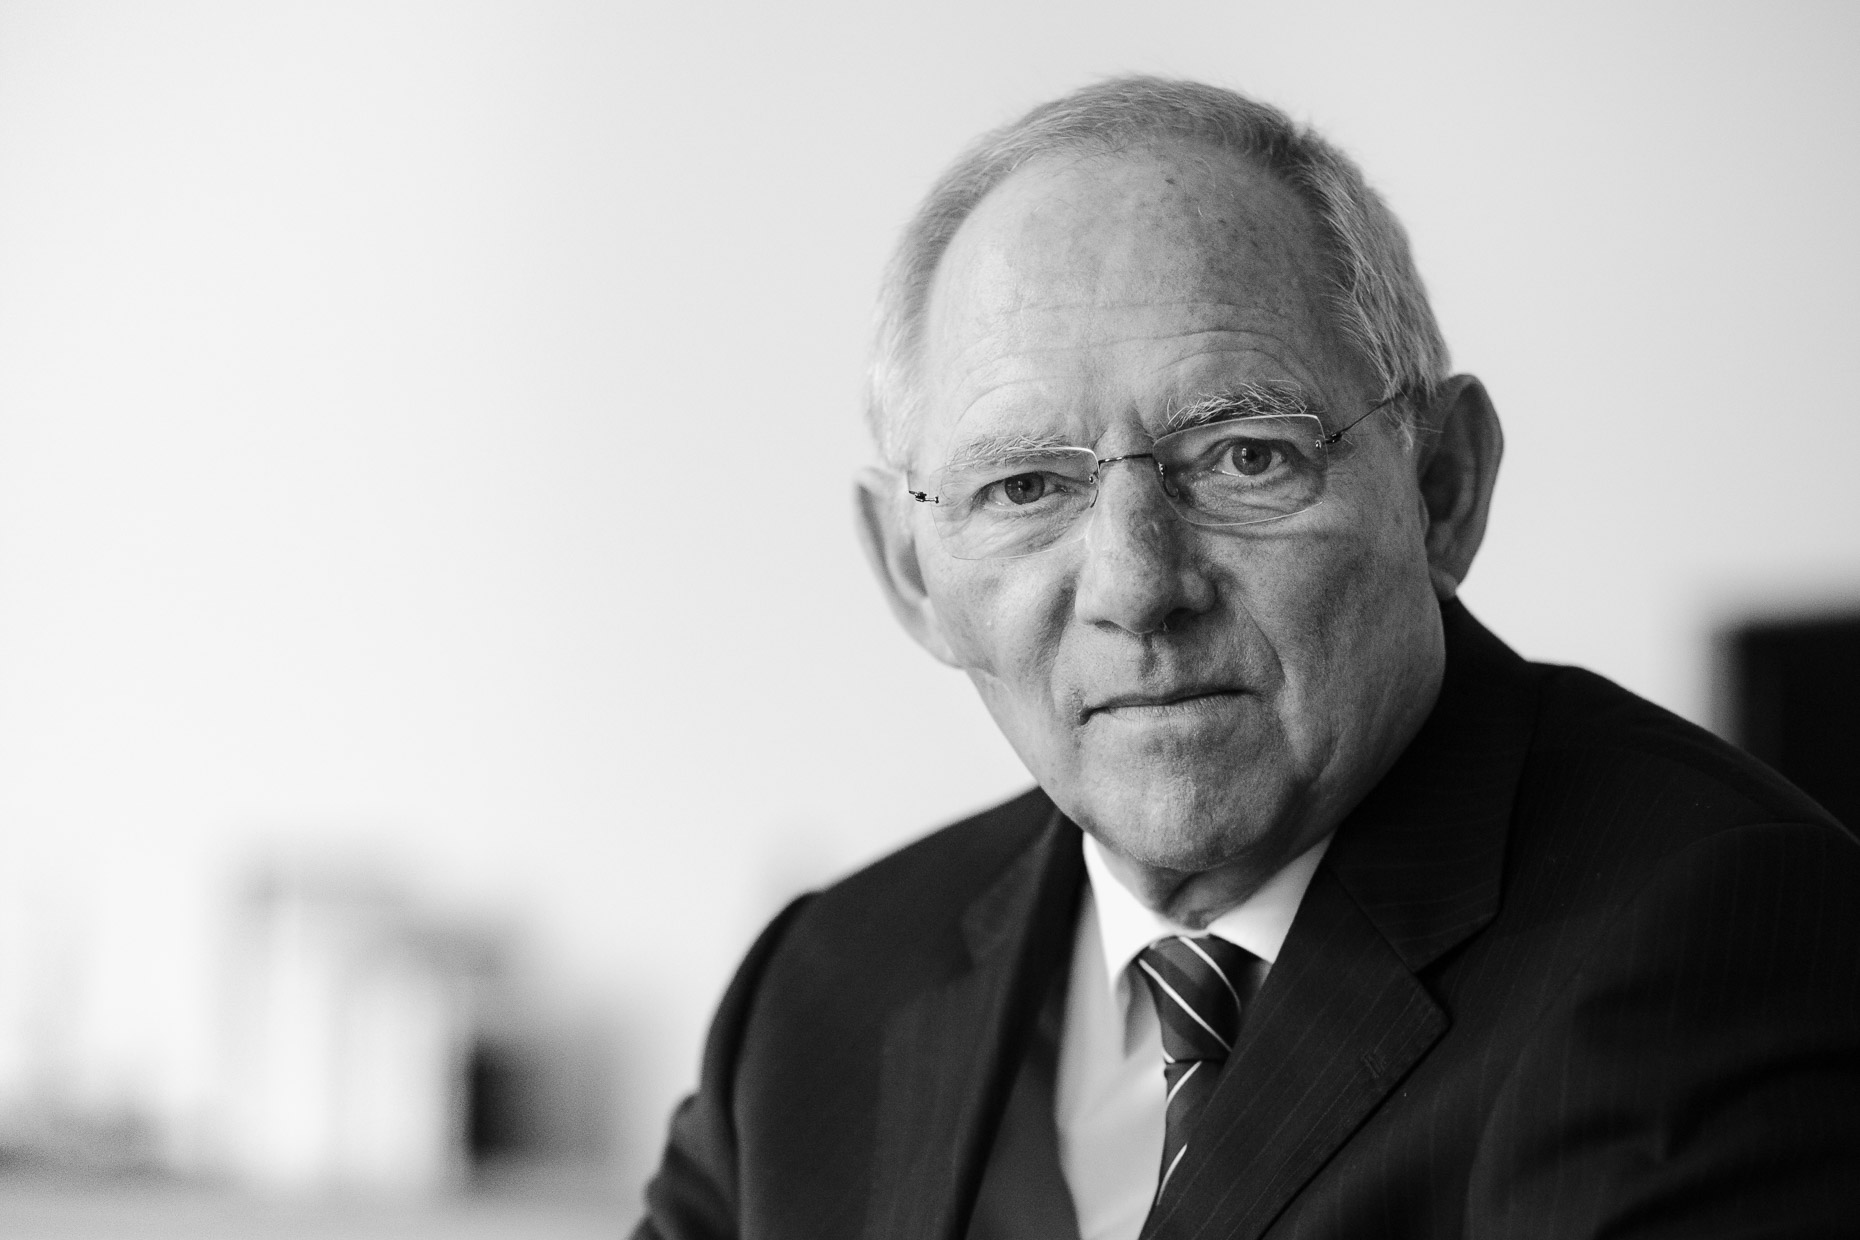 Wolfgang Schäuble Ministry of Finance